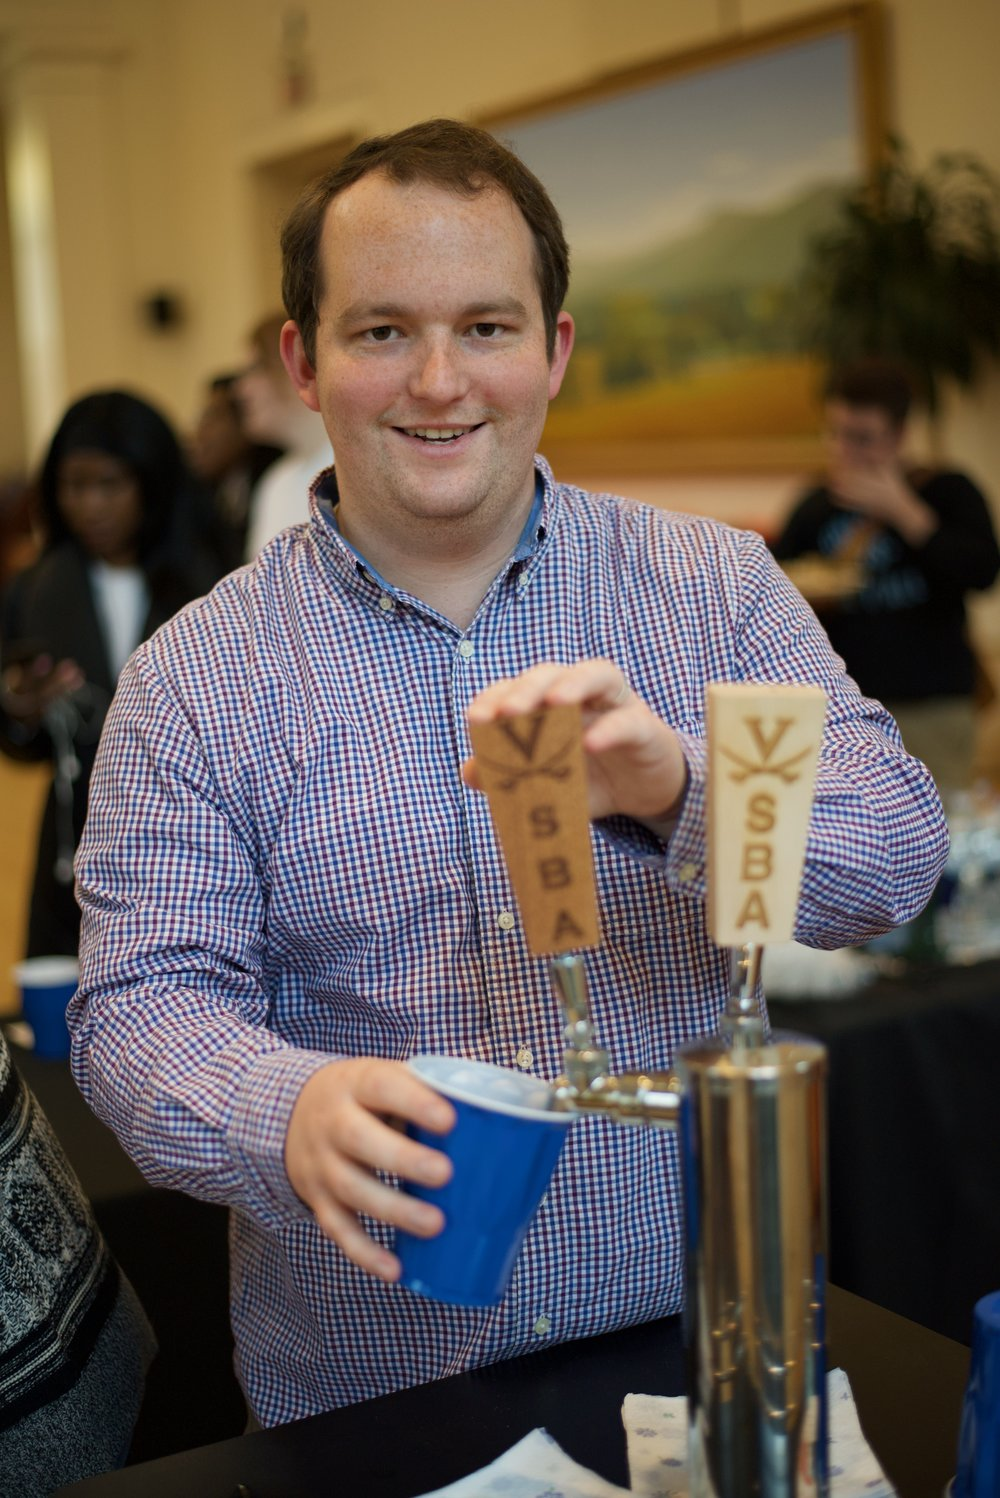 SBA President and class prankster Steven Glendon '18 mischievously pours a beer. Eric Hall/ Virginia Law Weekly